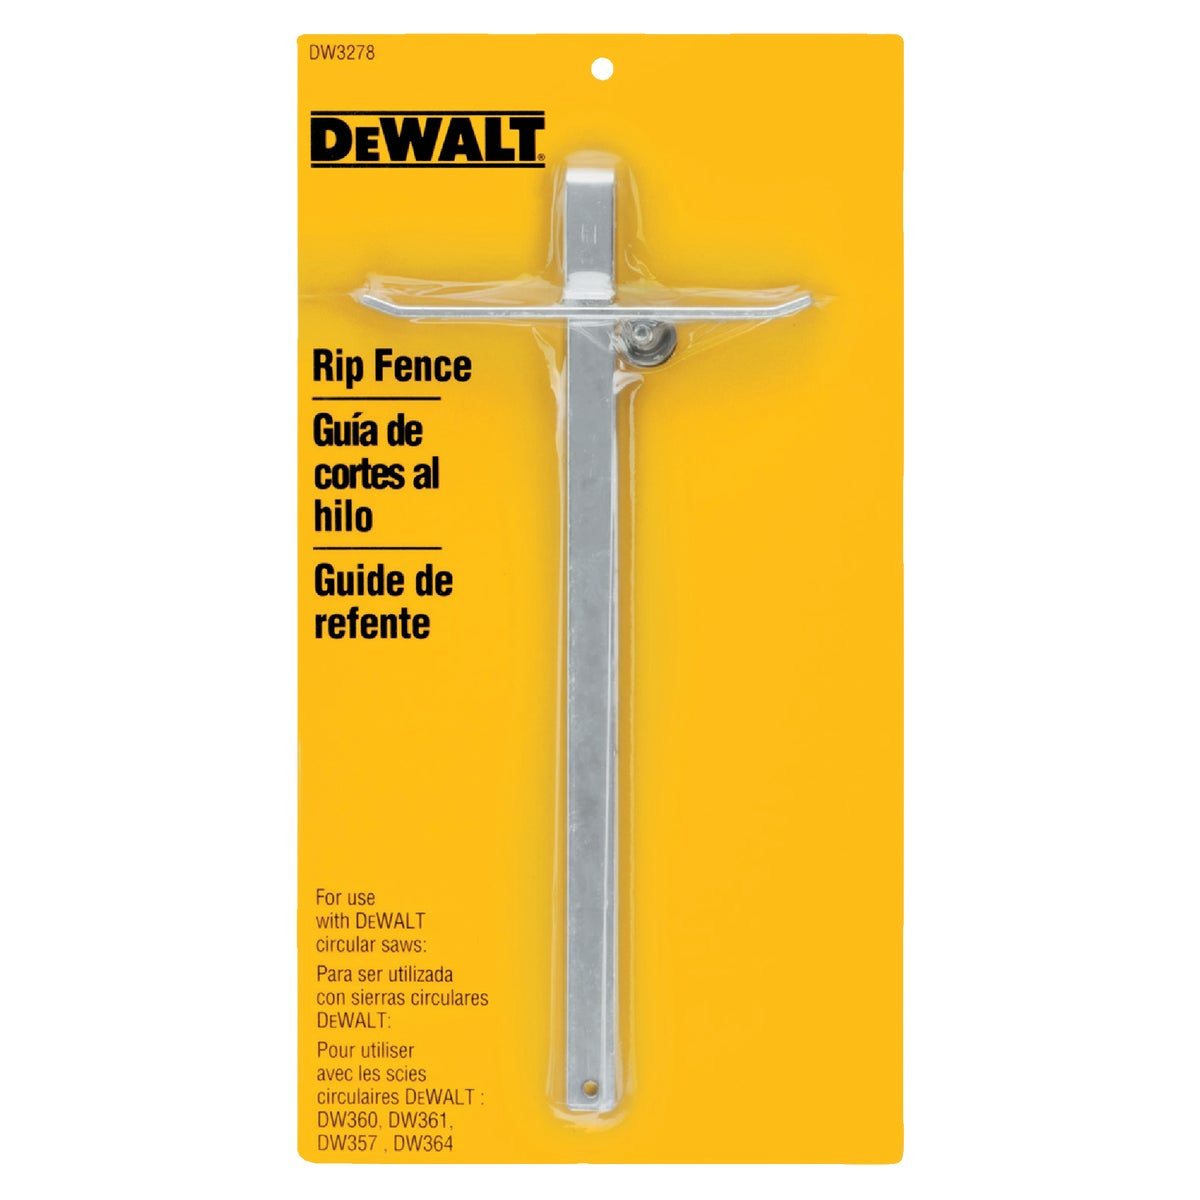 RIP FENCE - DW3278 by DeWalt